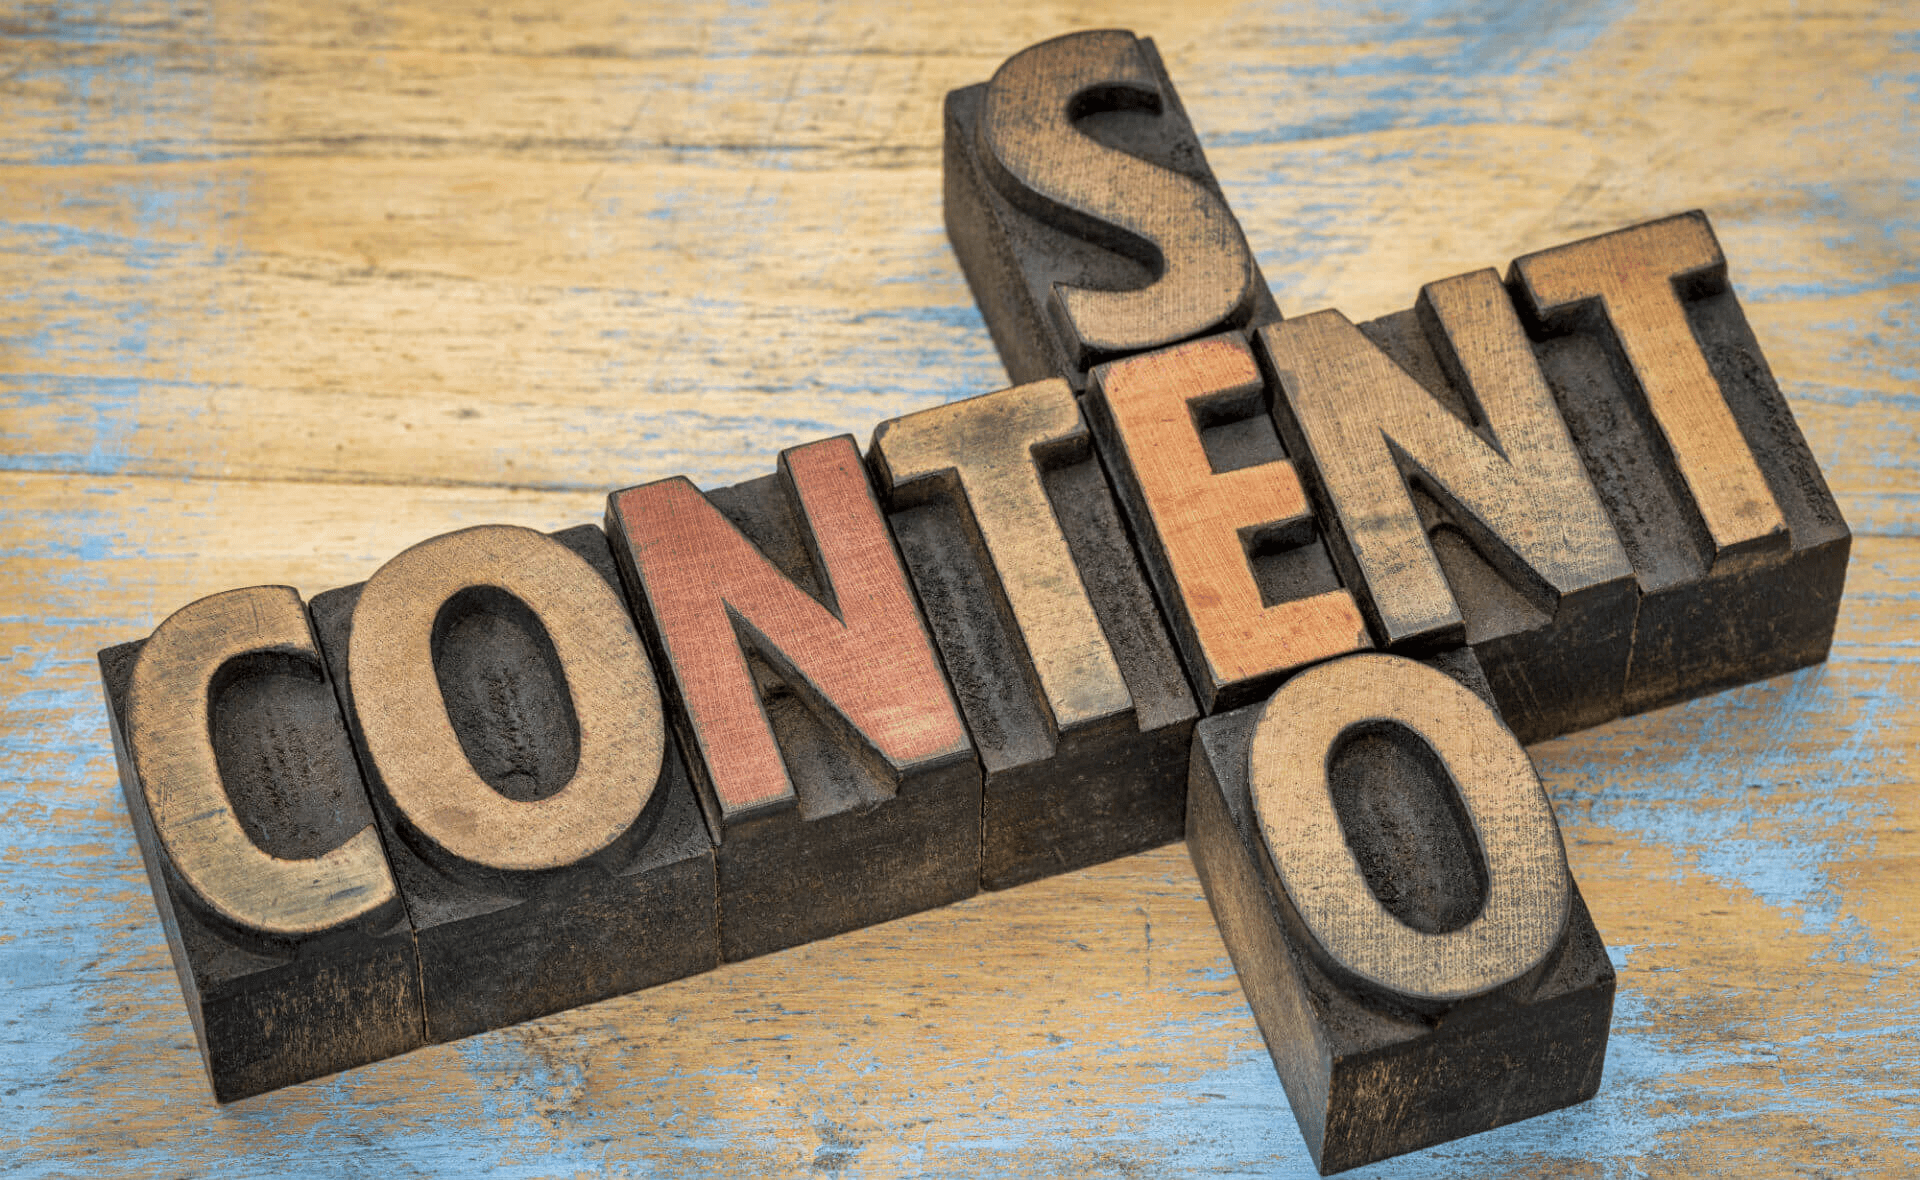 Check these SEO tips for your content